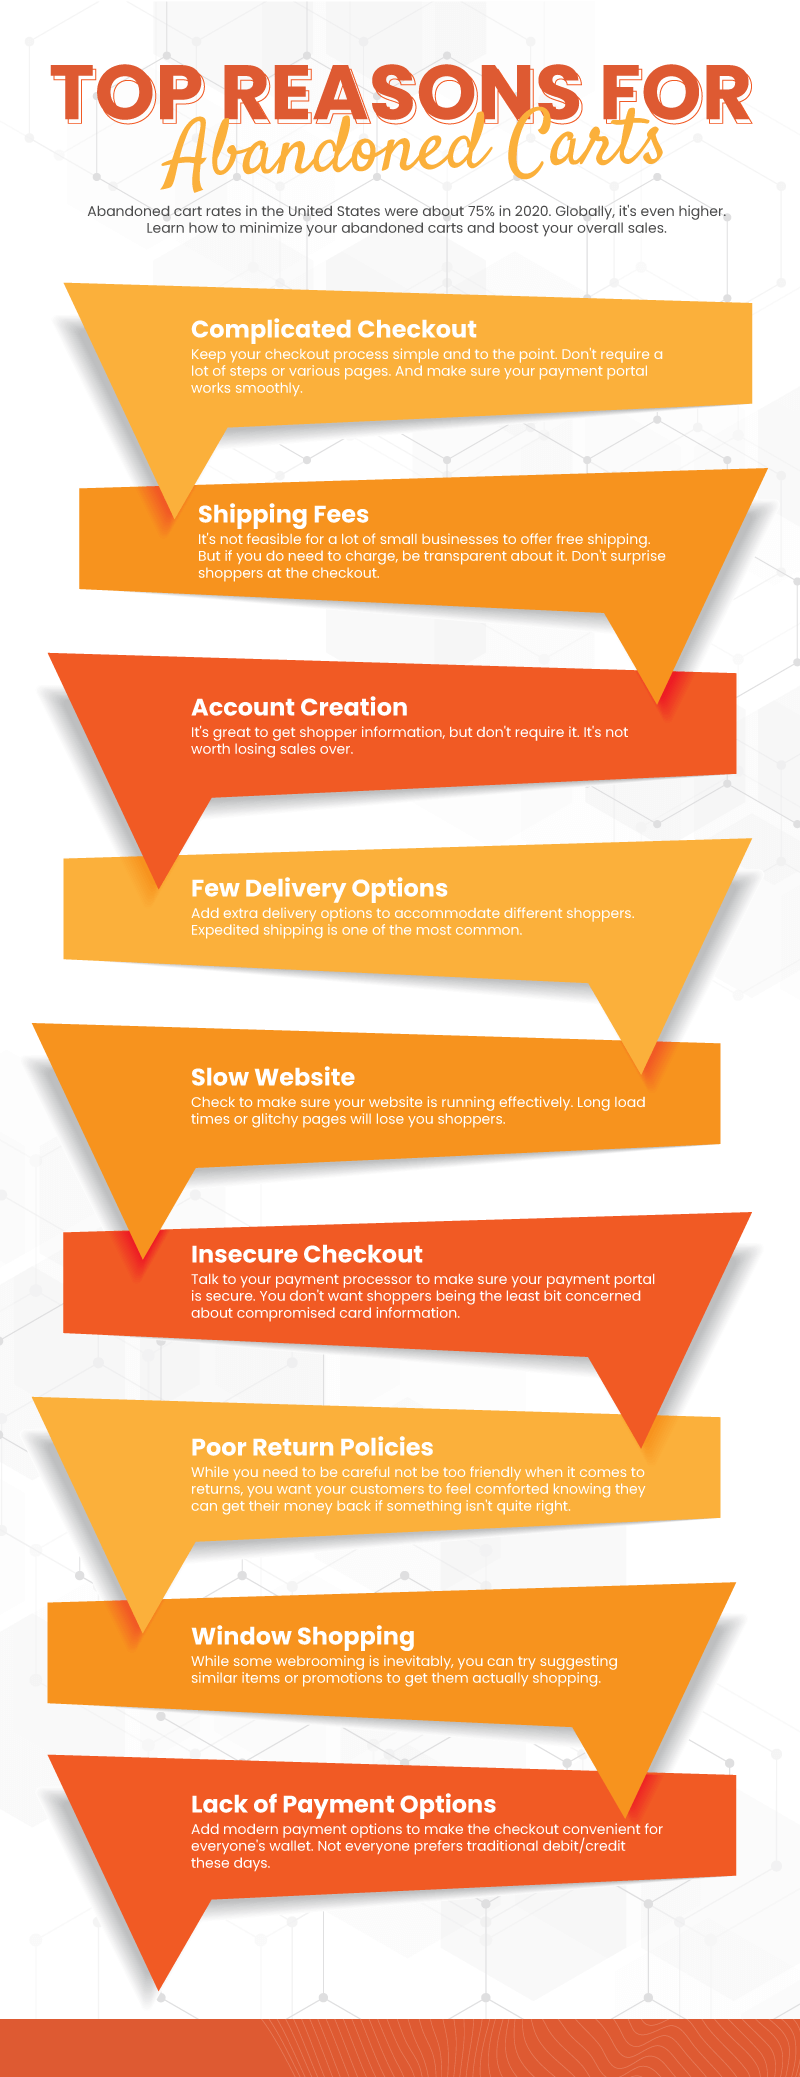 Infographic showing the top 9 reasons for abandoned carts in eCommerce stores